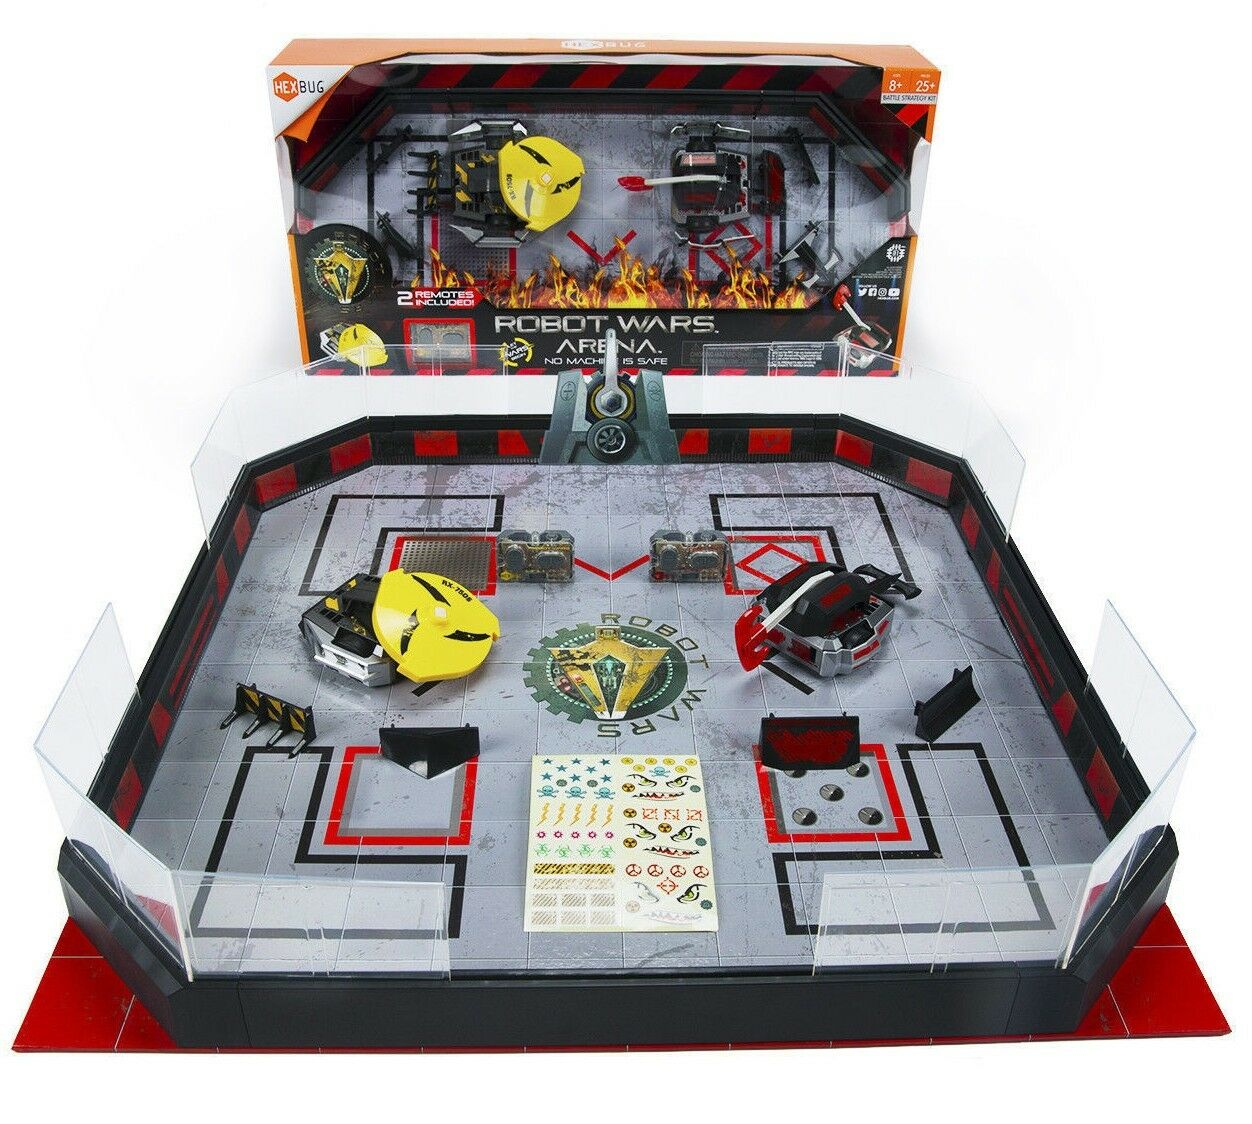 Hexbug Robot Wars Arena Fordable Juguetes 2 Battle Bot Robots-Royal Pain Impulse